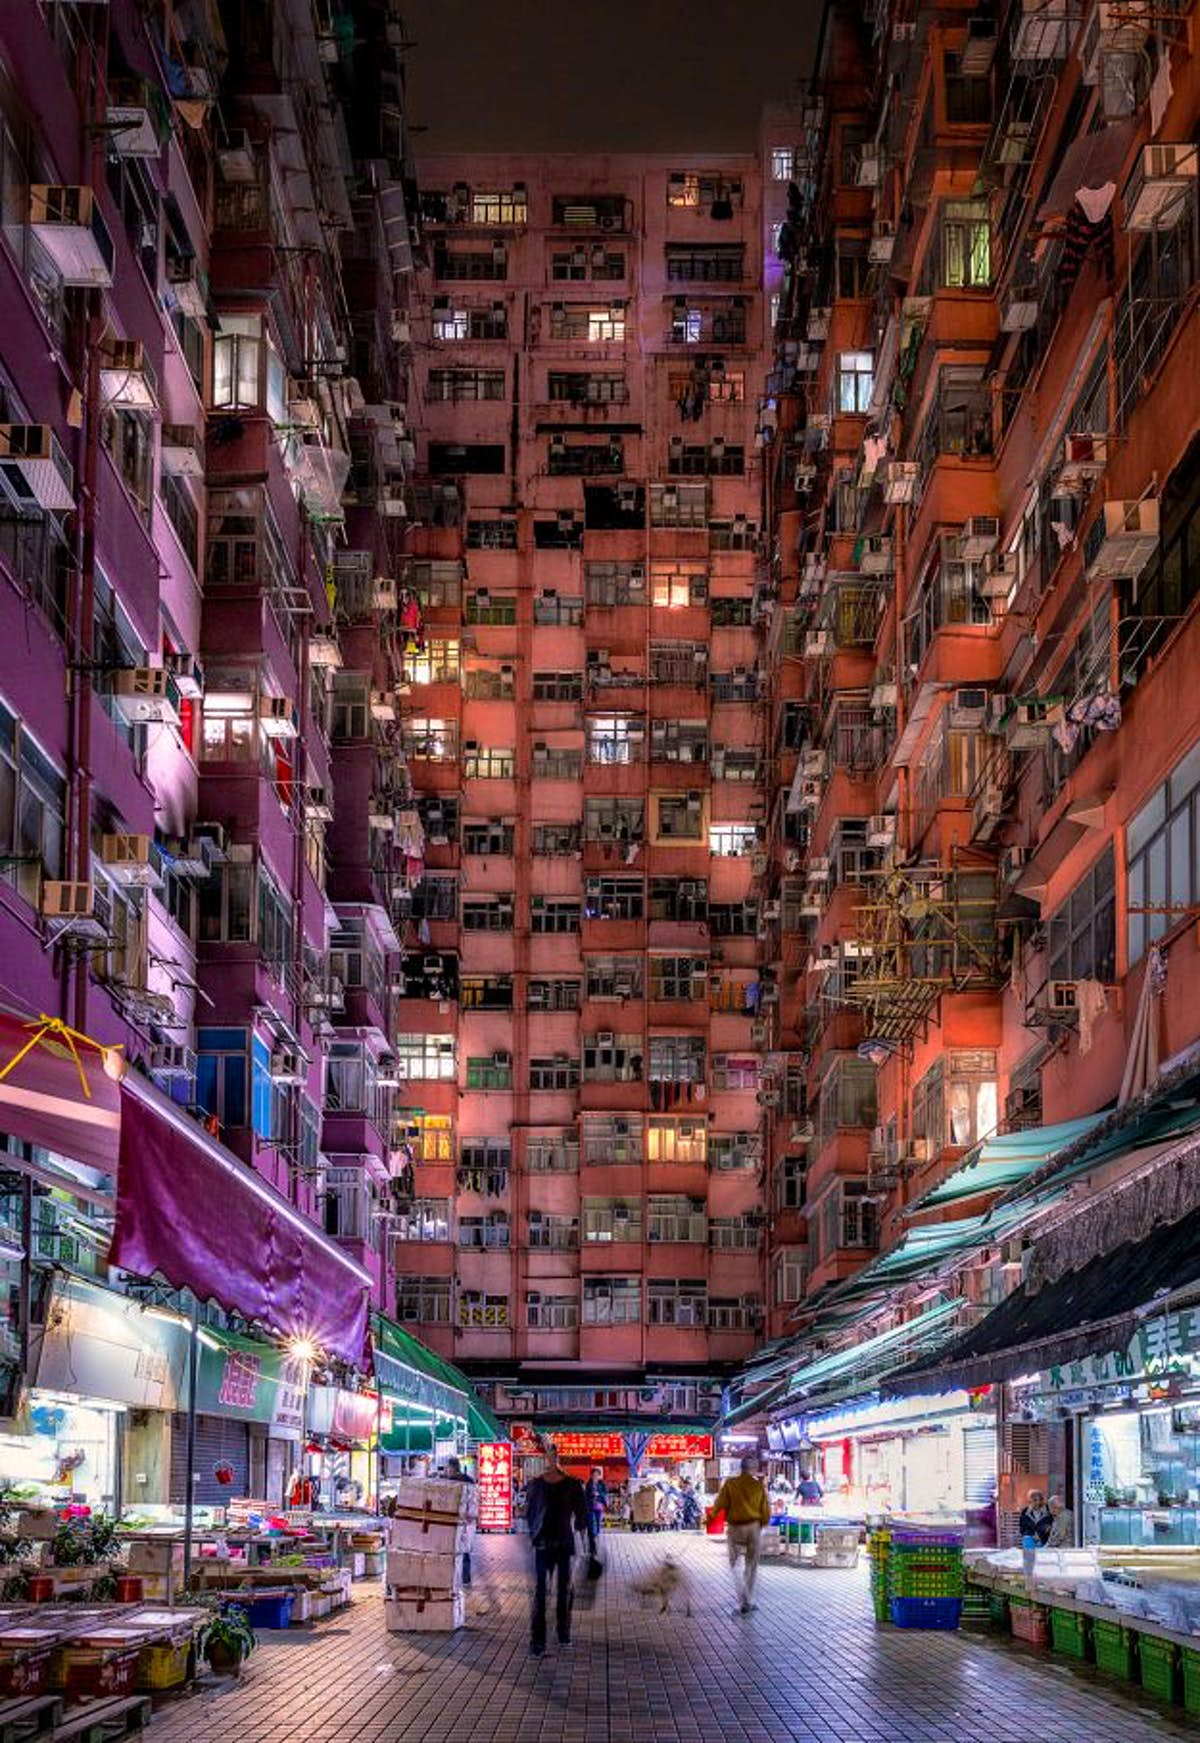 Photographer shares stunning pictures of Hong Kong inspired by Ghost in the Shell anime - Lonely Planet